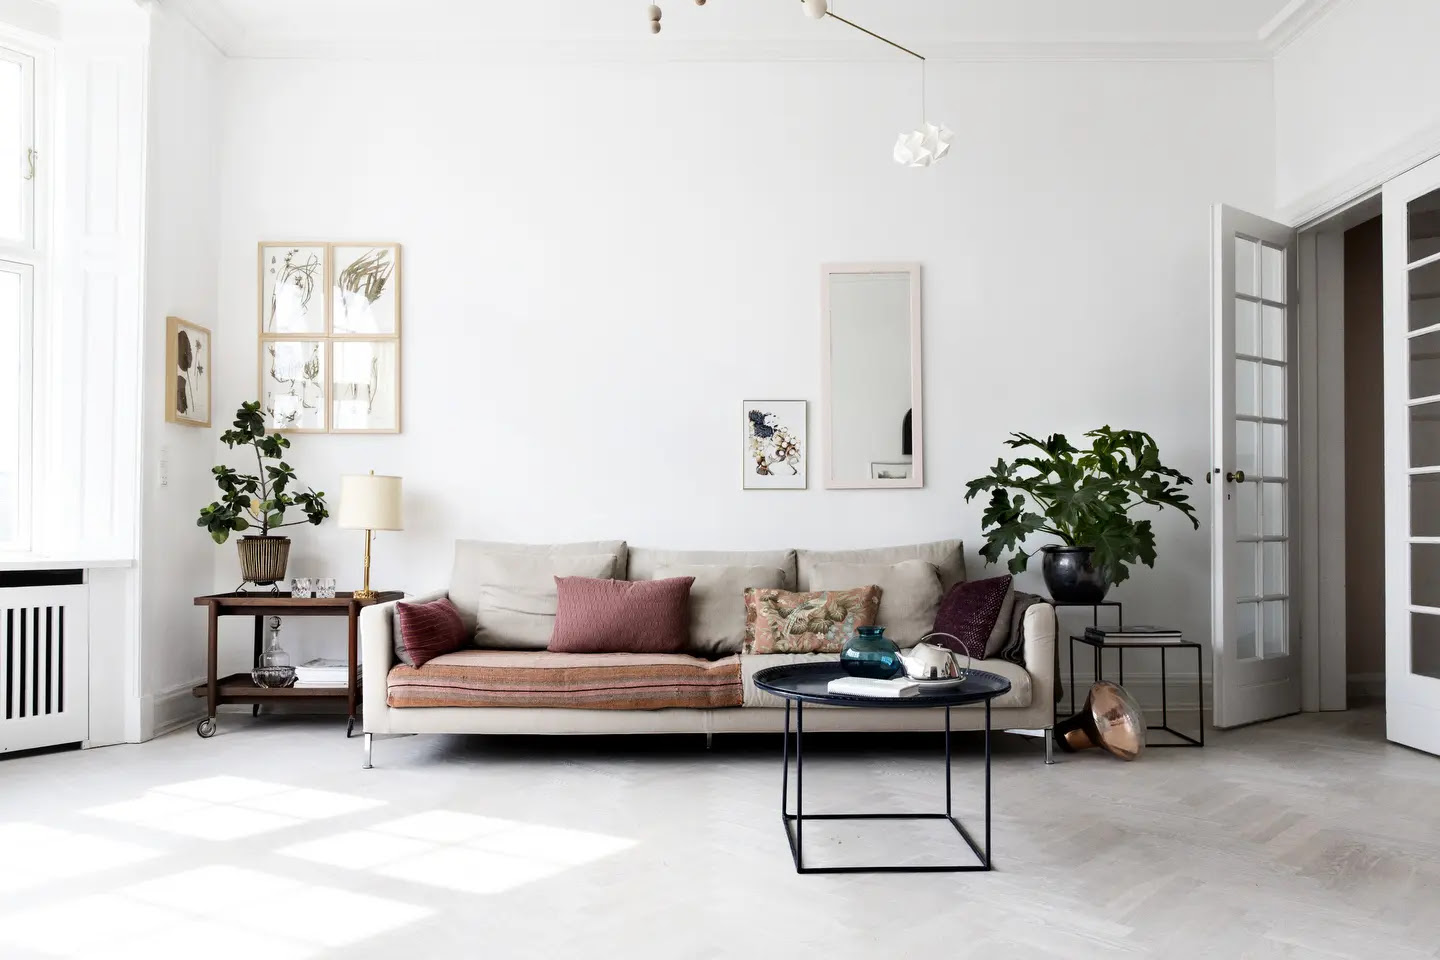 Interior Inspiration from Gubi Denmark | Trendland